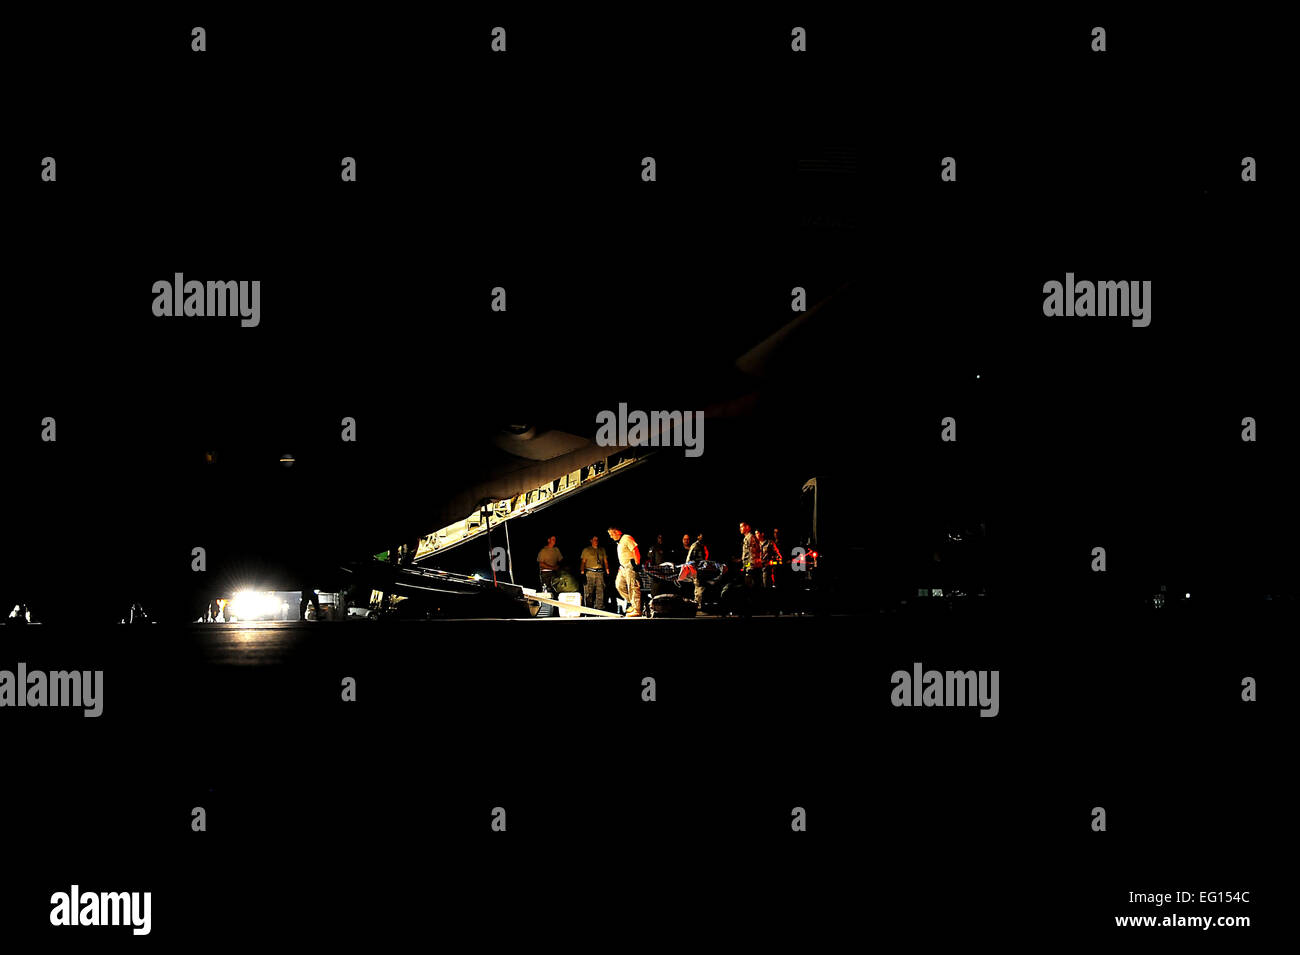 Haitian earthquake patients are transported onto a C-130 from the 908th Air Lift Wing, Maxwell AFB, AL, by Aero - Stock Image